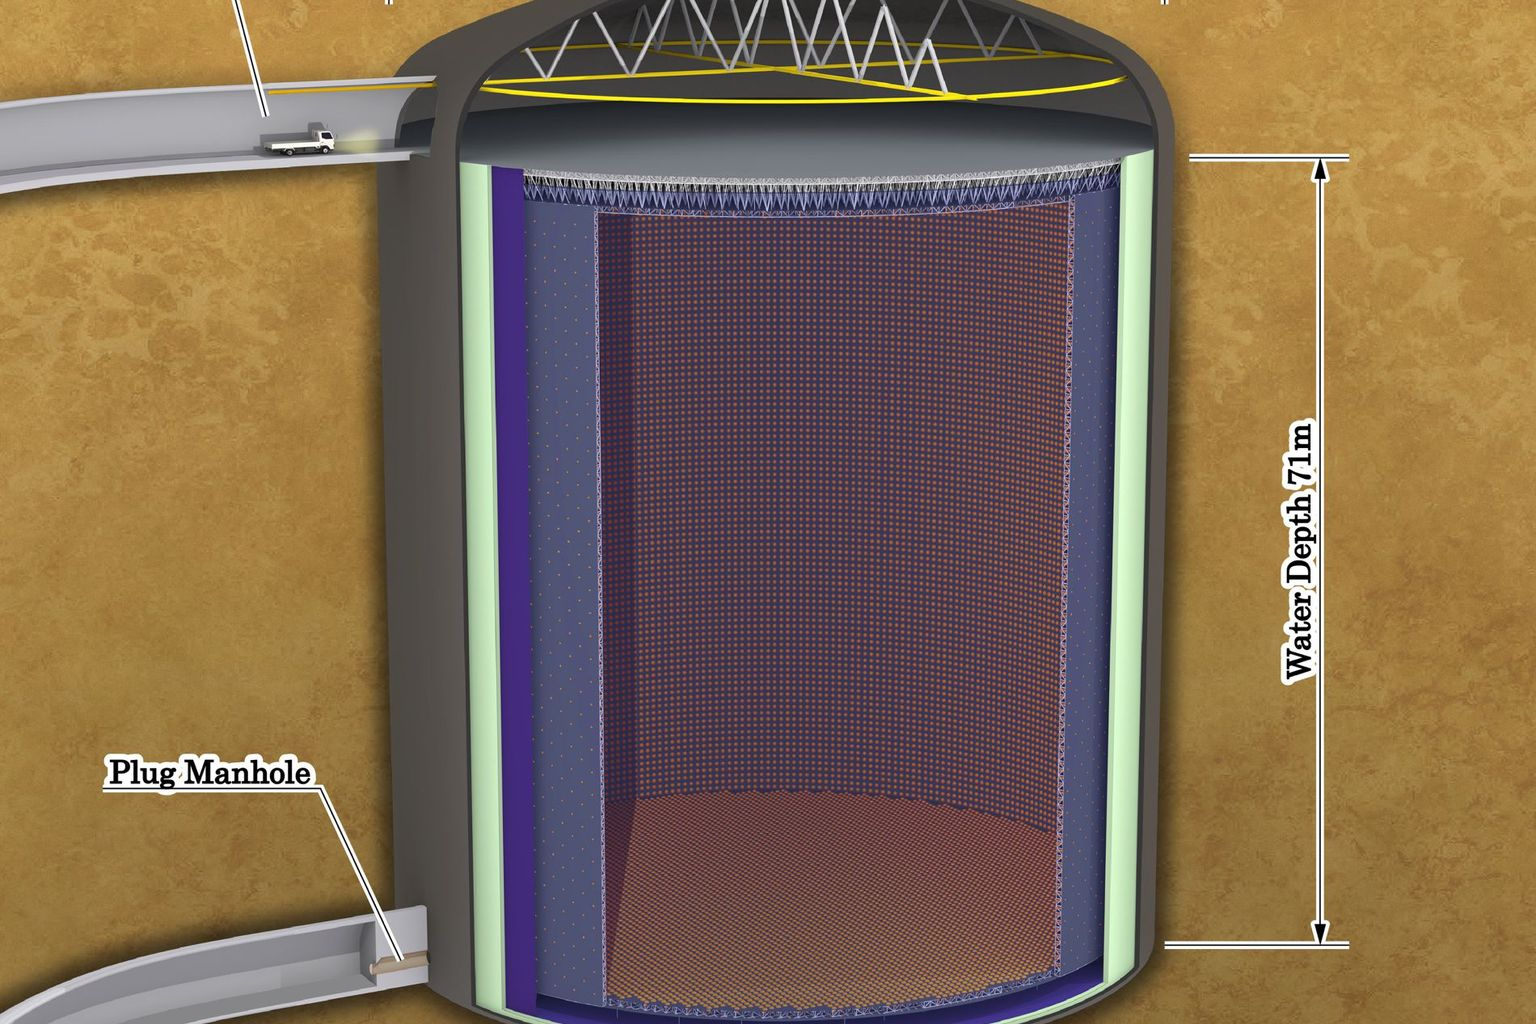 The Hyper-Kamiokande detector consists of a giant, cylindrical water tank 71 meters high and 68 meters in diameter. Illustration: Hyper-Kamiokande Collaboration